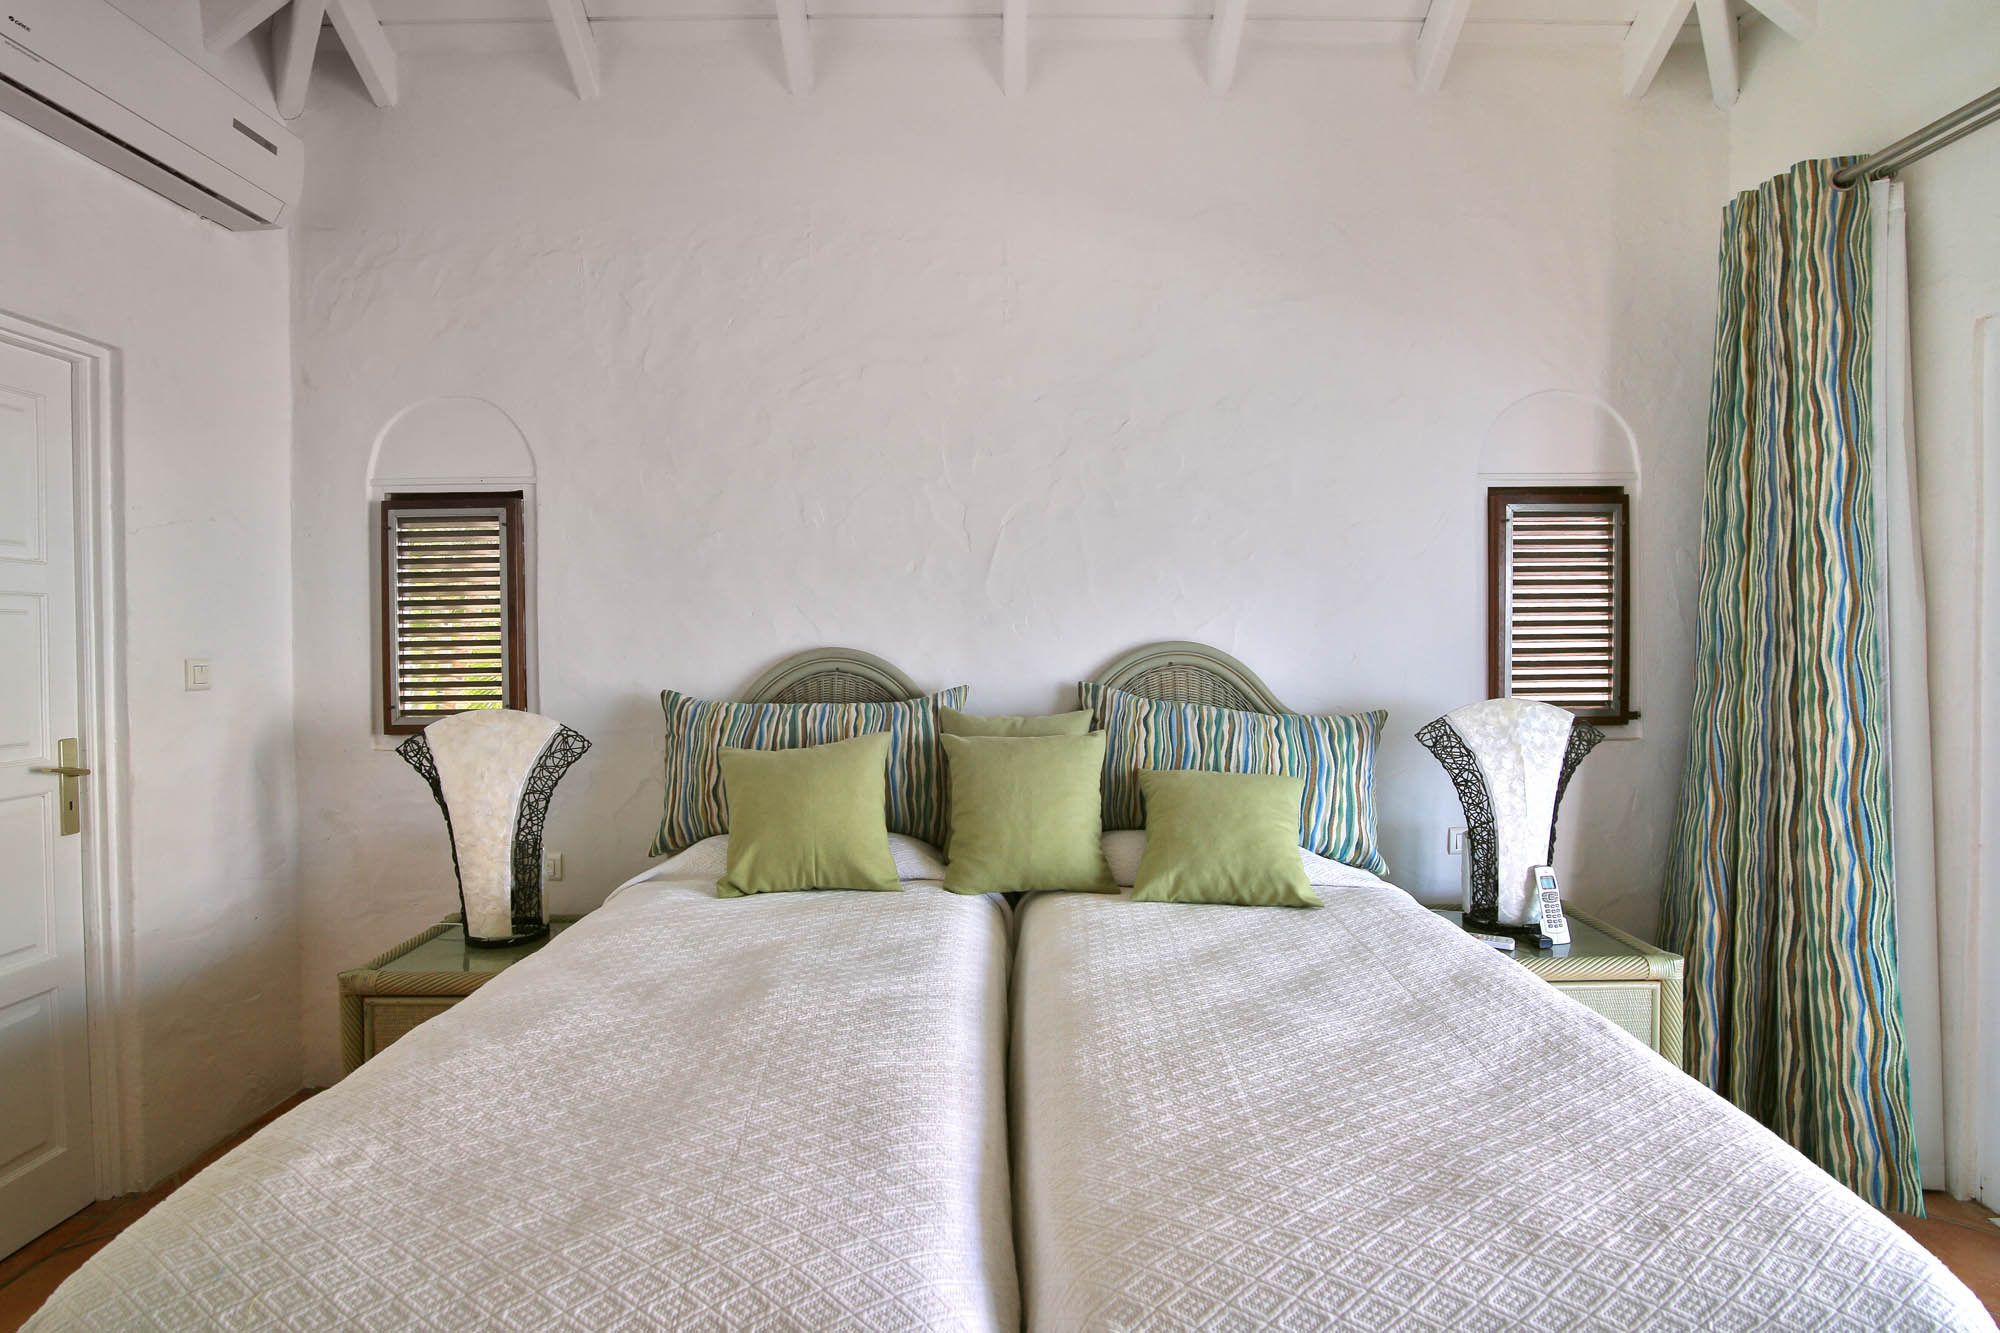 A photograph of one of the spacious bedrooms of this Caribbean holiday villa.